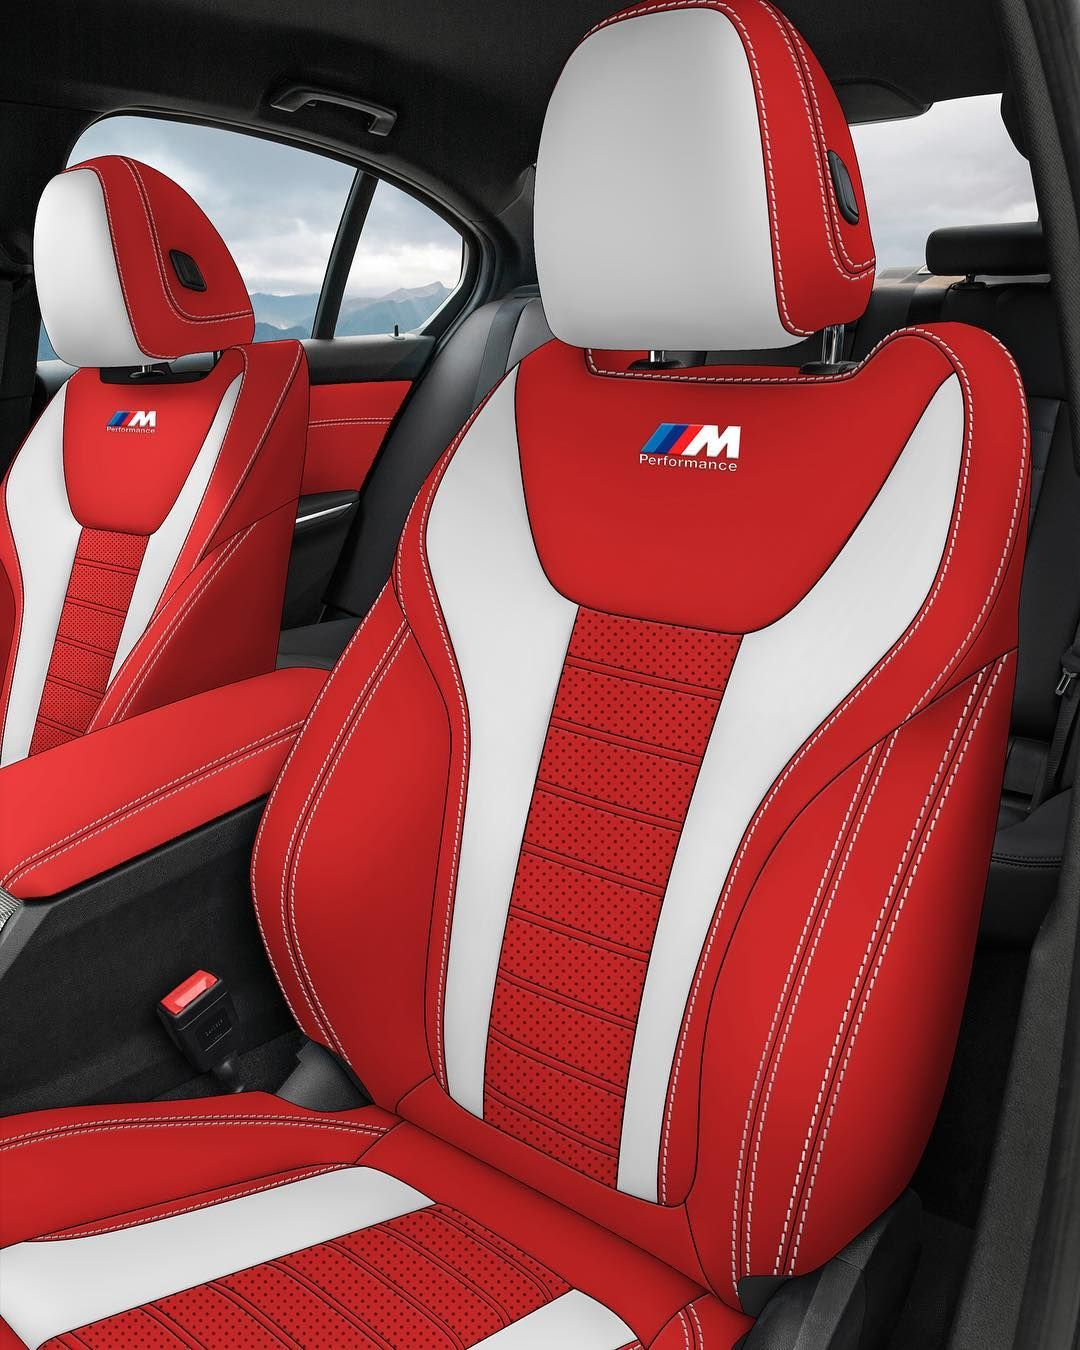 BMW 3 Series Red White Black Custom Interior Console Seats